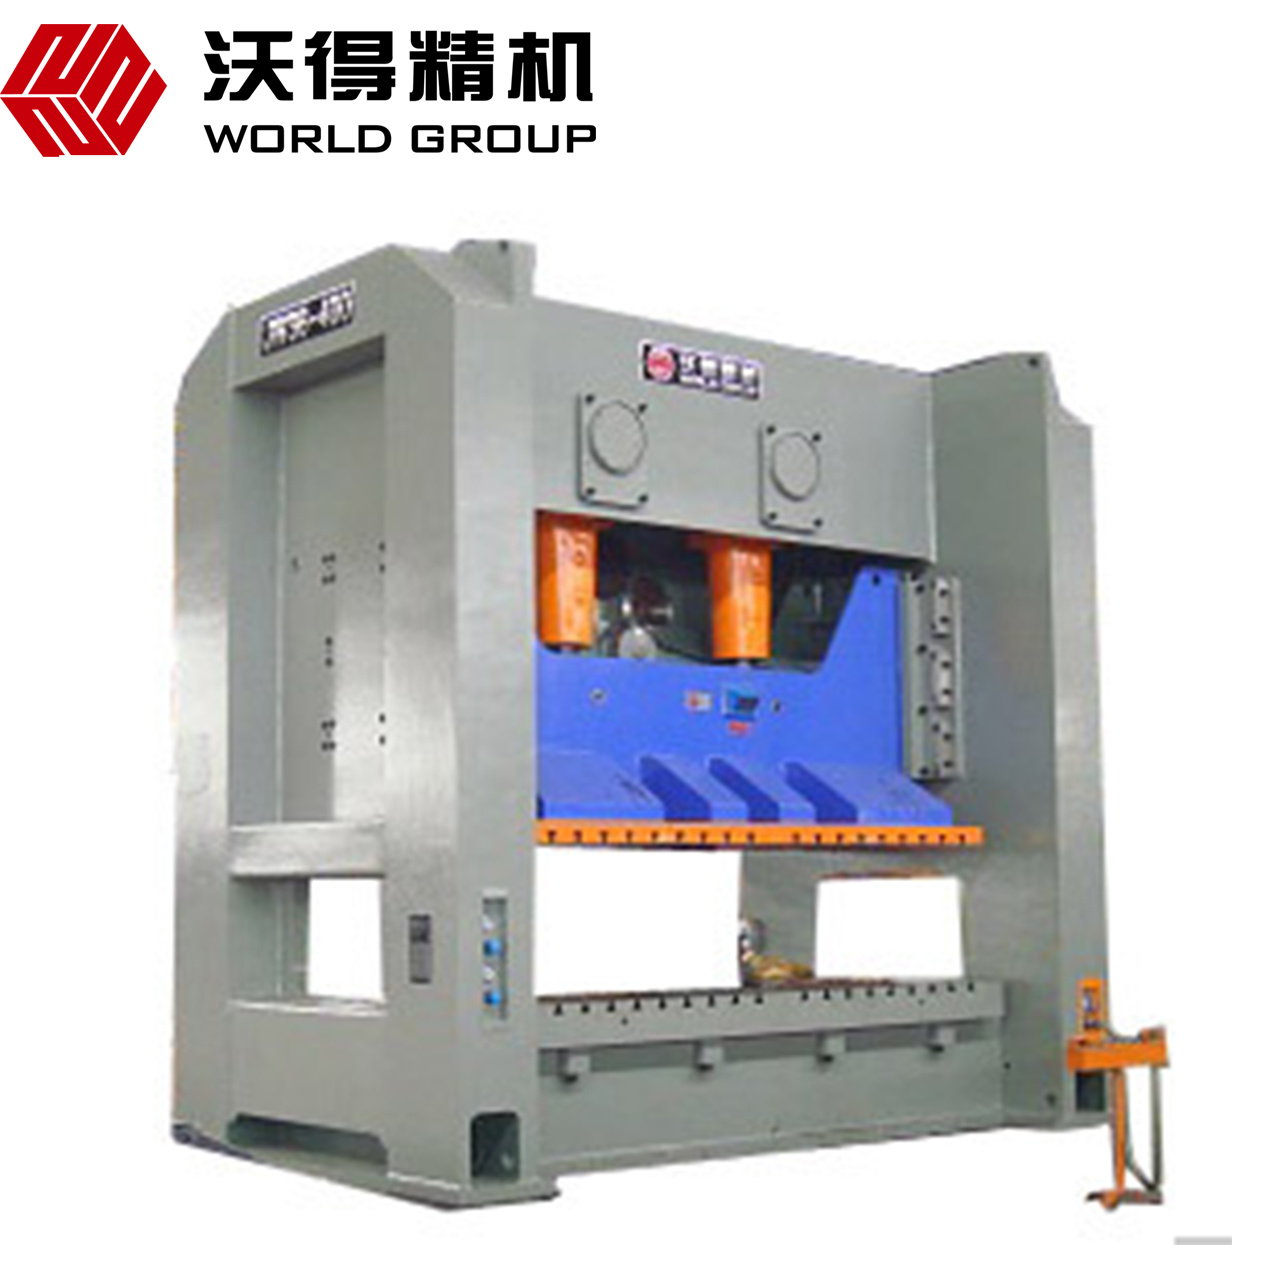 China 400 Ton Jw36 Series Heat Power Transfer Punch Machine With Plc Pocer Transper